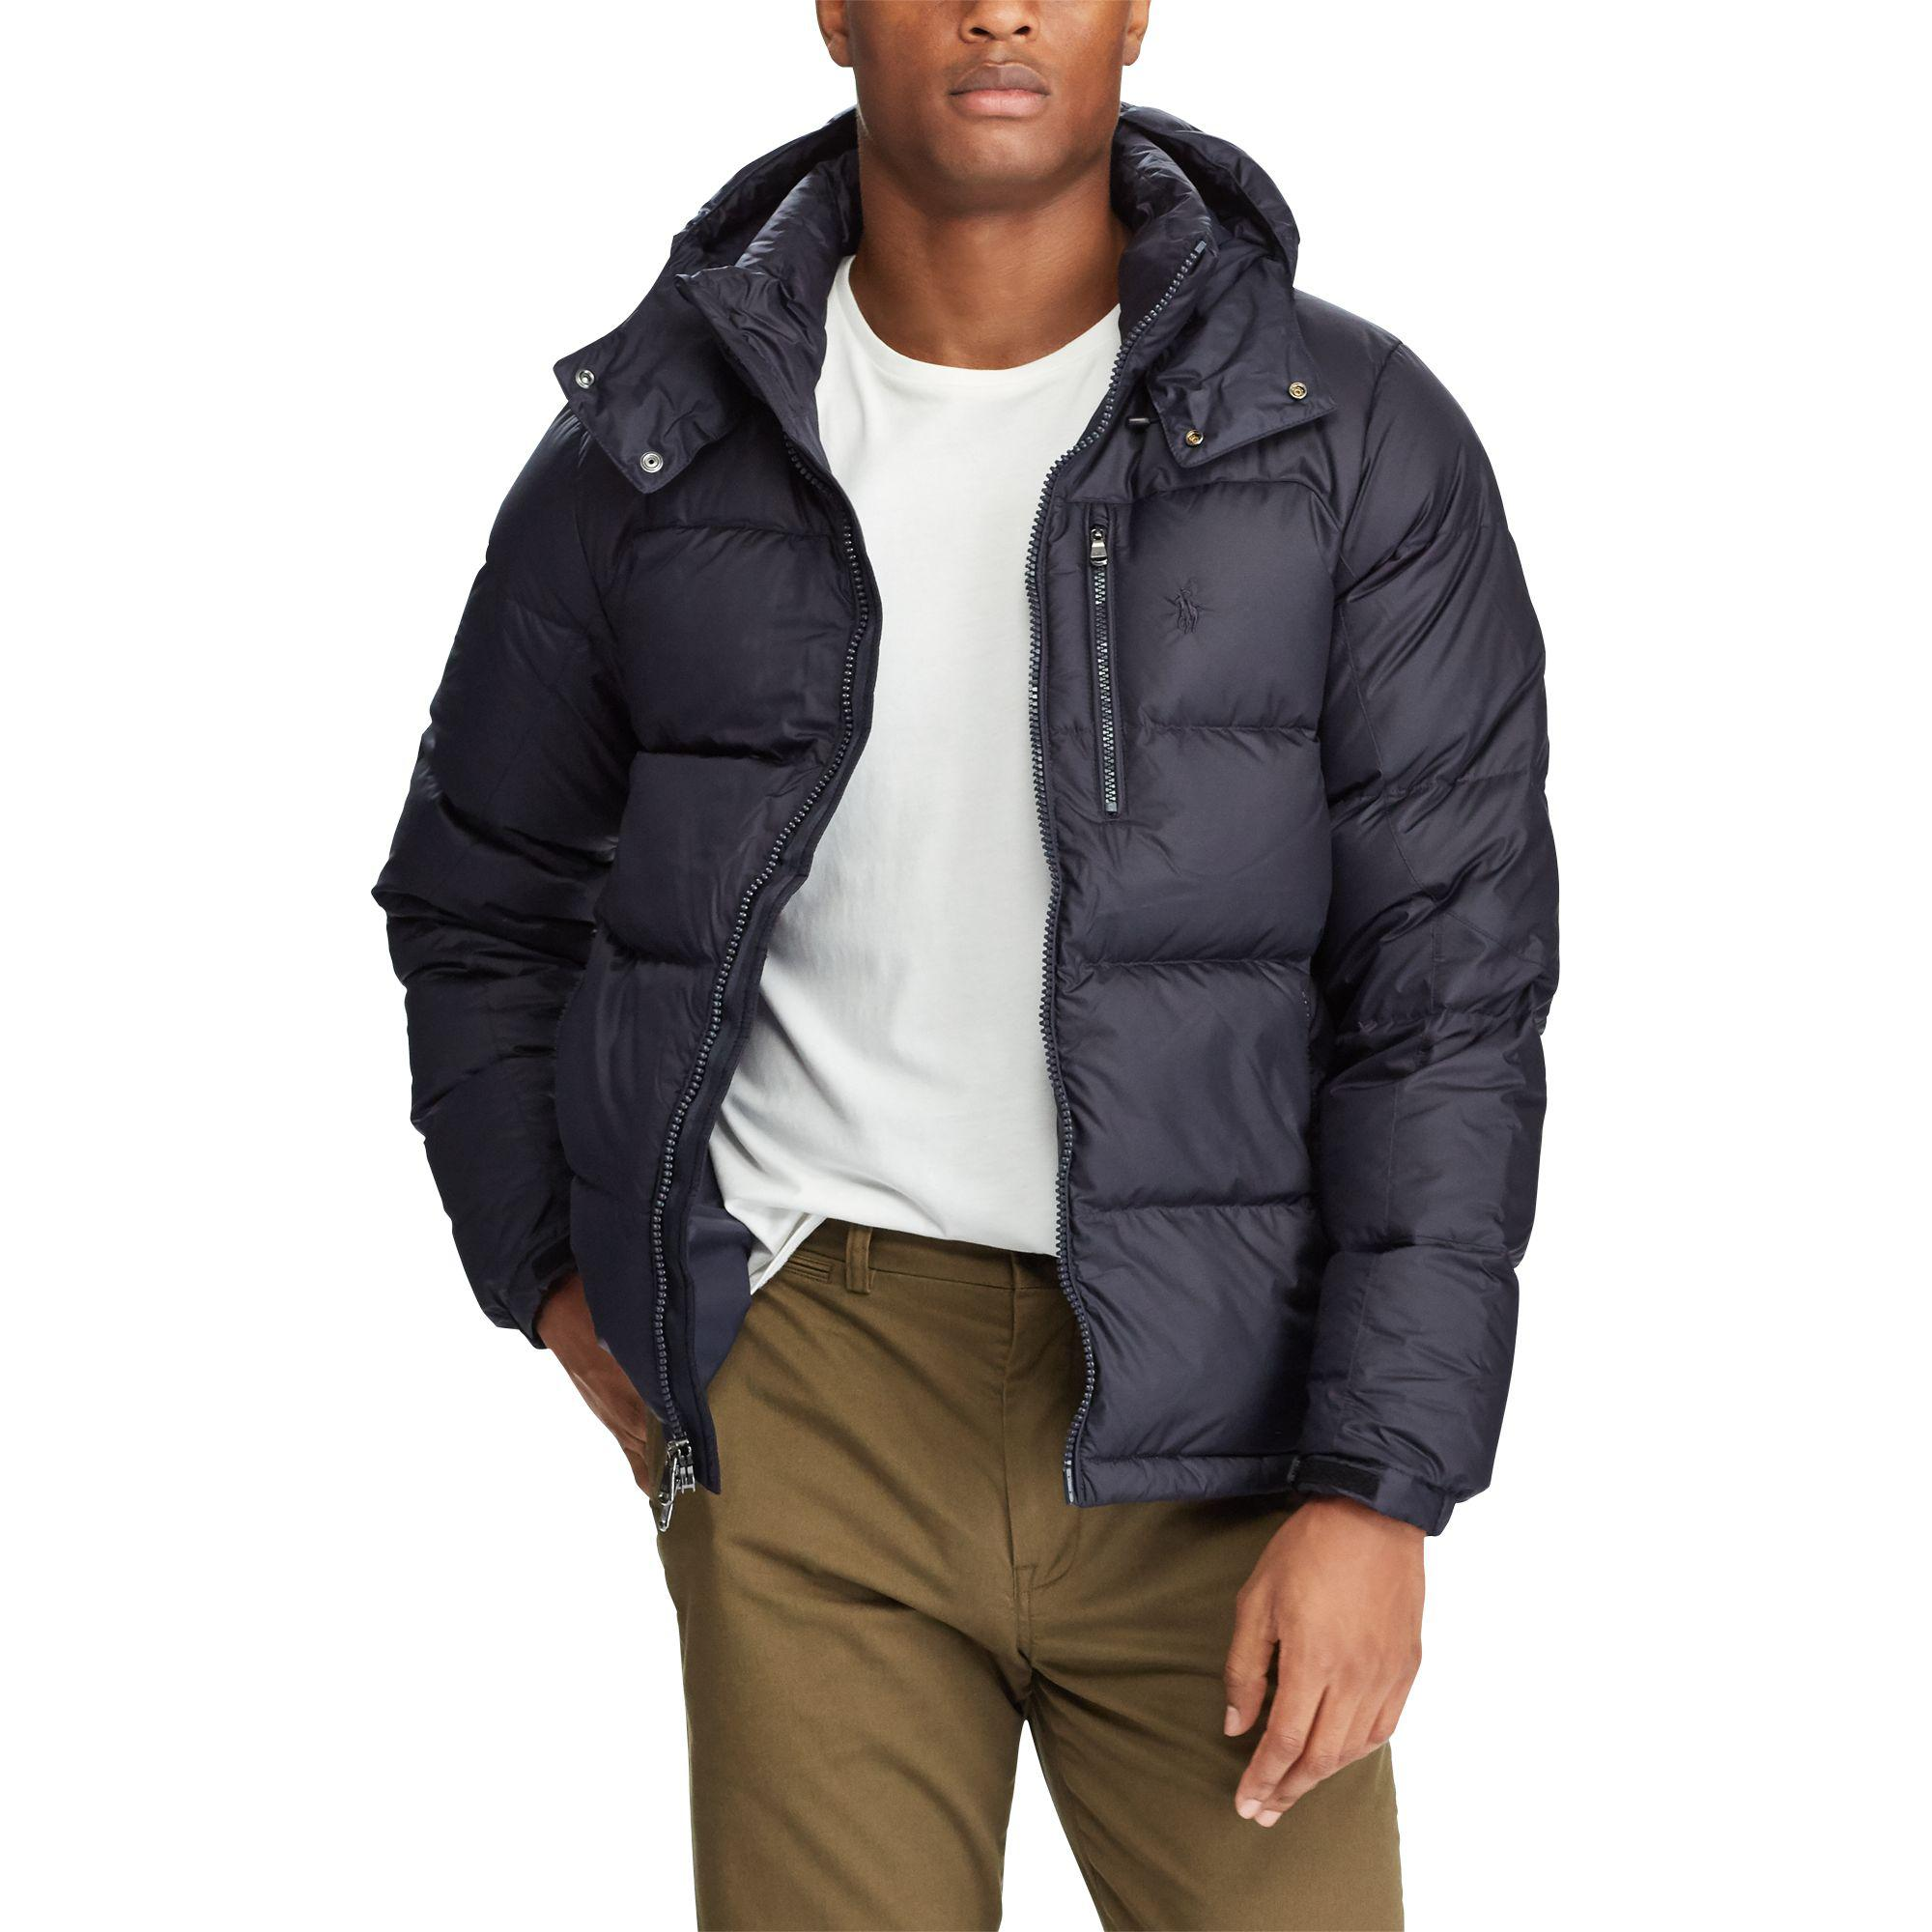 a40bc09f5eacd Polo Ralph Lauren Water-repellent Down Jacket in Blue for Men - Lyst